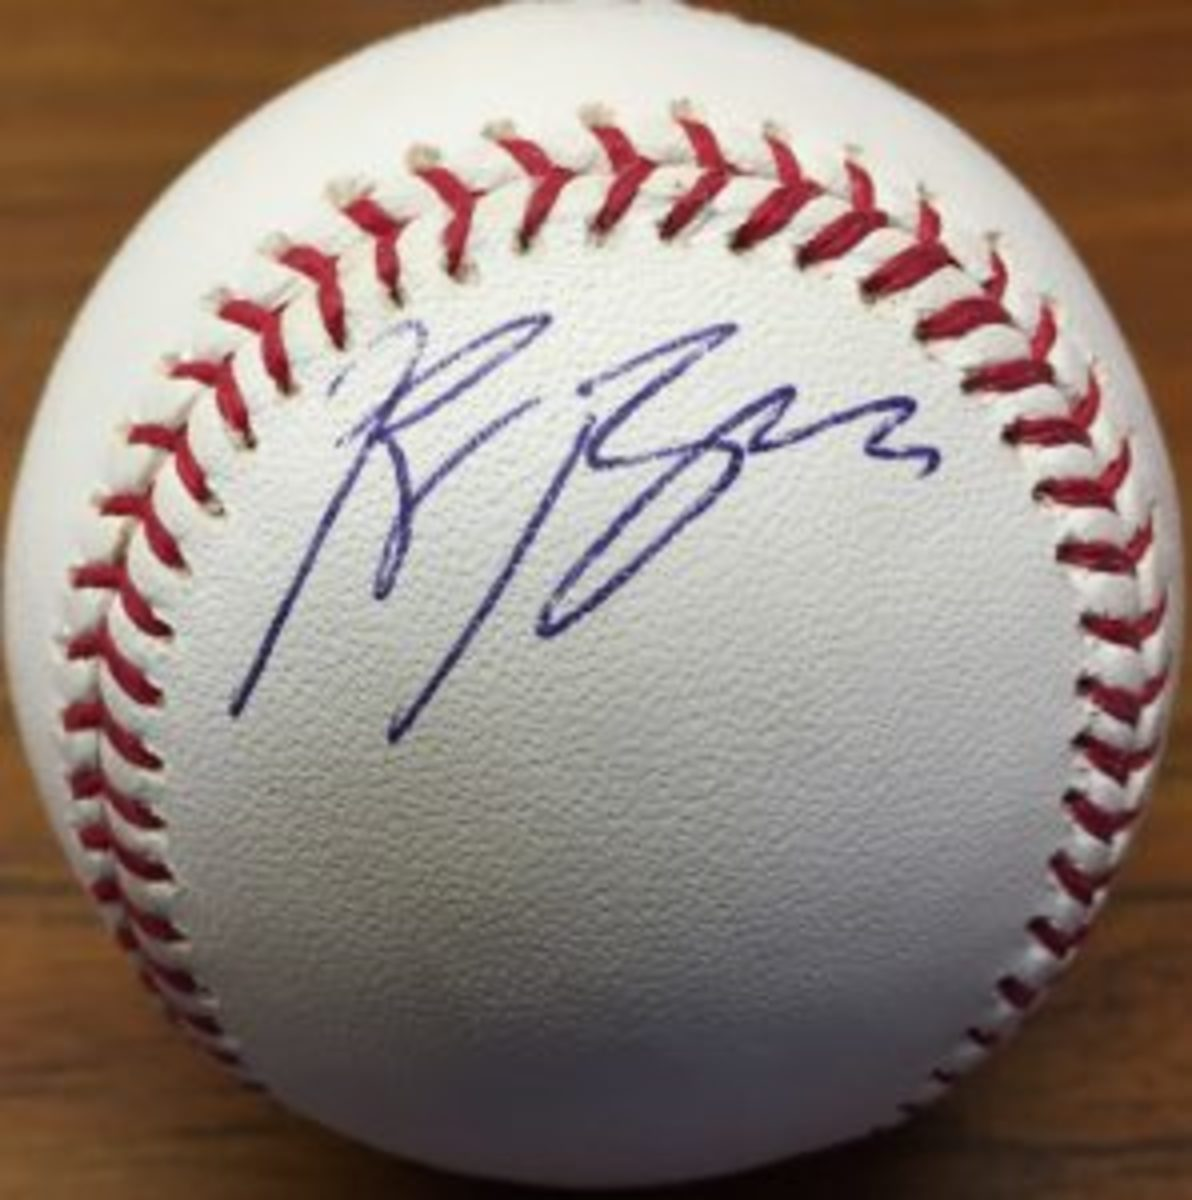 Sports Collectors Digest Editor Bert Lehman obtained Ryan Braun's autograph at Spring Training in 2007.